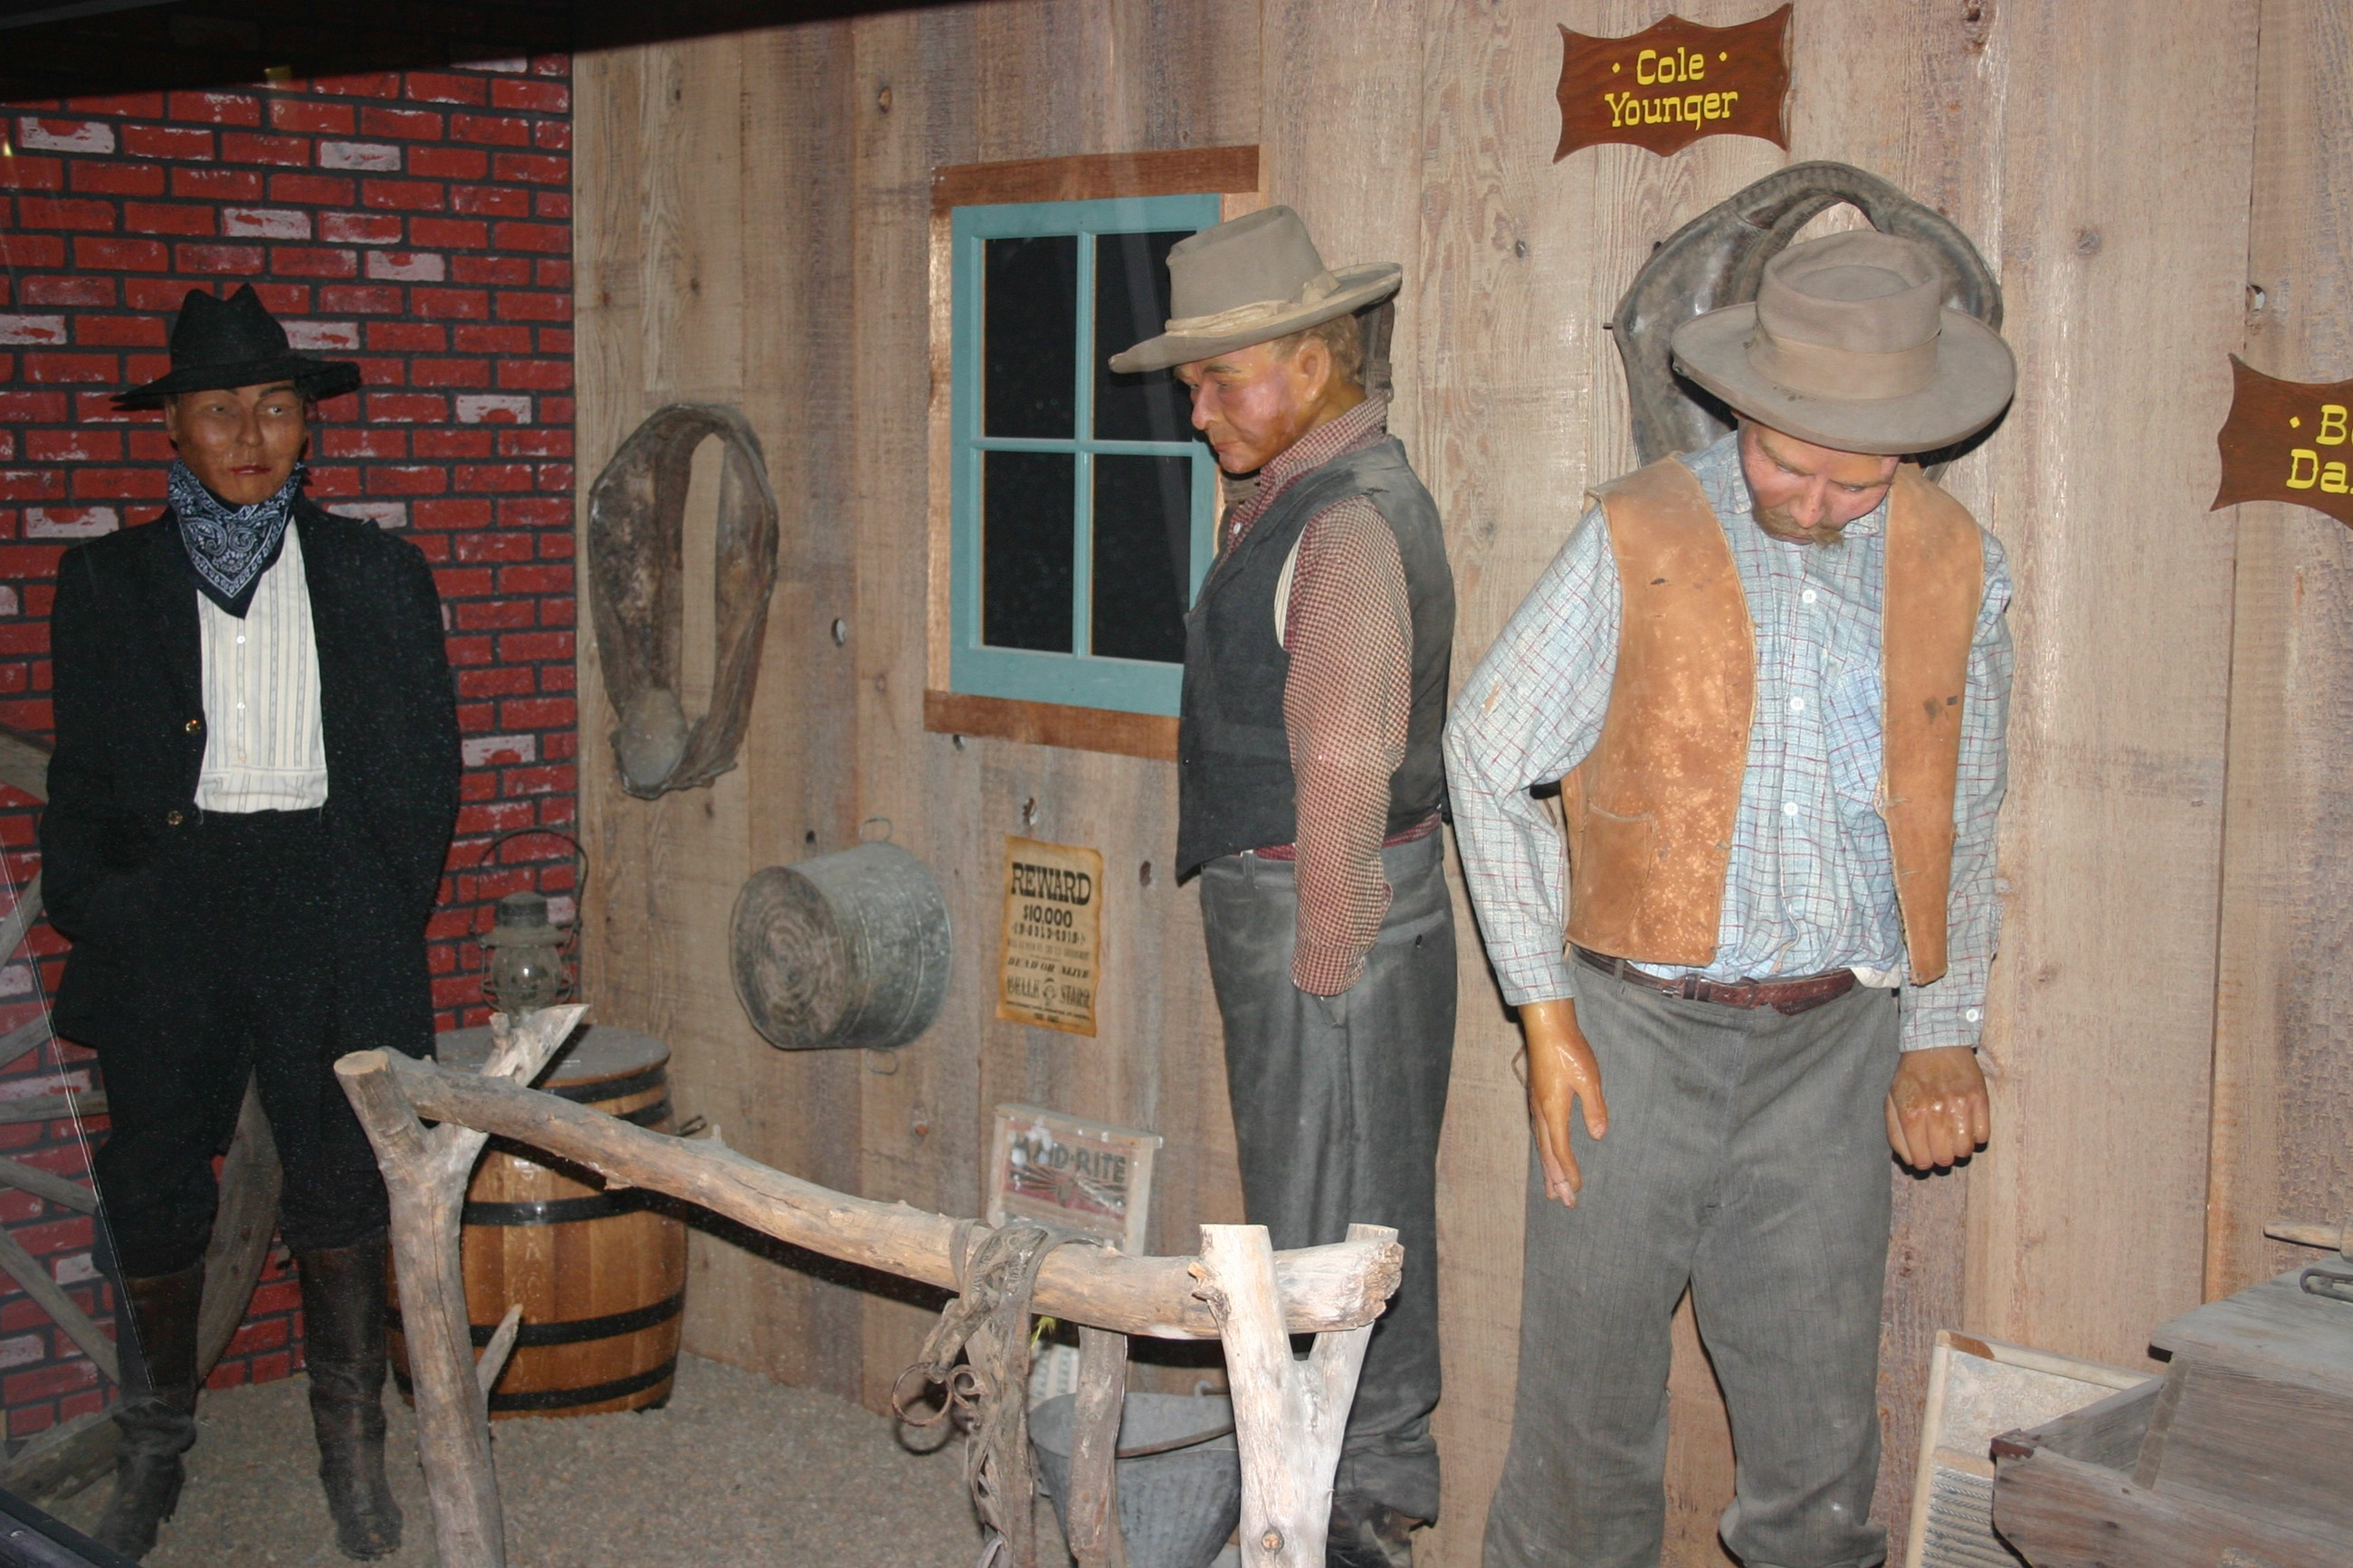 Western Cowboys in the Gunfighters Wax Museum in Dodge City, Kansas